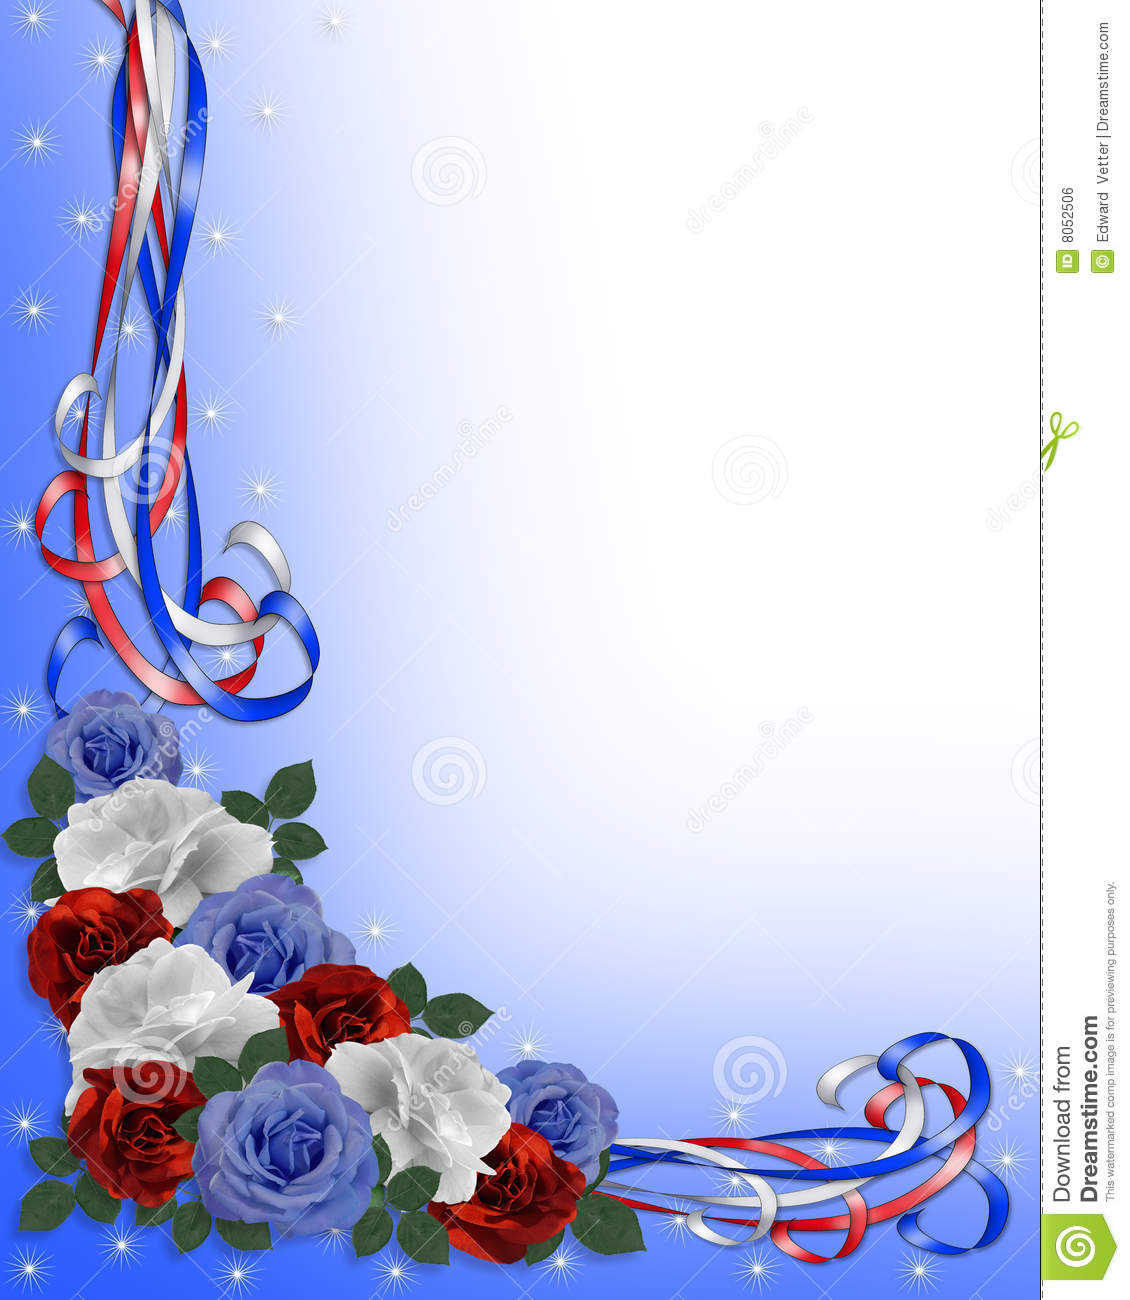 Patriotic Roses Border Red White Blue Royalty Free Stock Image   Image